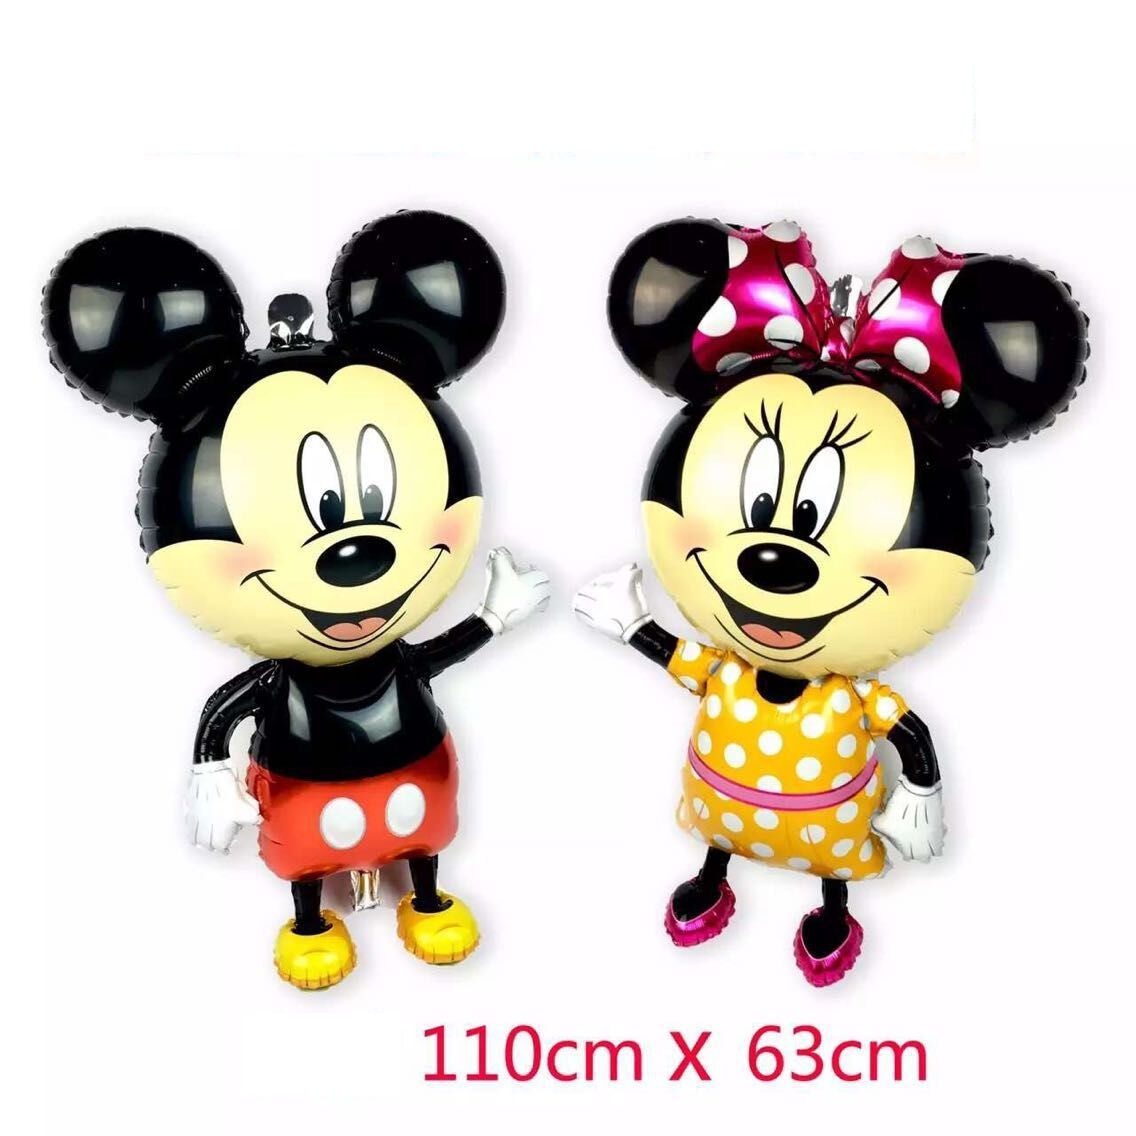 110cm-Giant-Mickey-Minnie-Inflatable-Toys-Cartoon-Foil-Birthday-Party-Balloon-Airwalker-Balloons-for-Kids-Baby-Toys-1